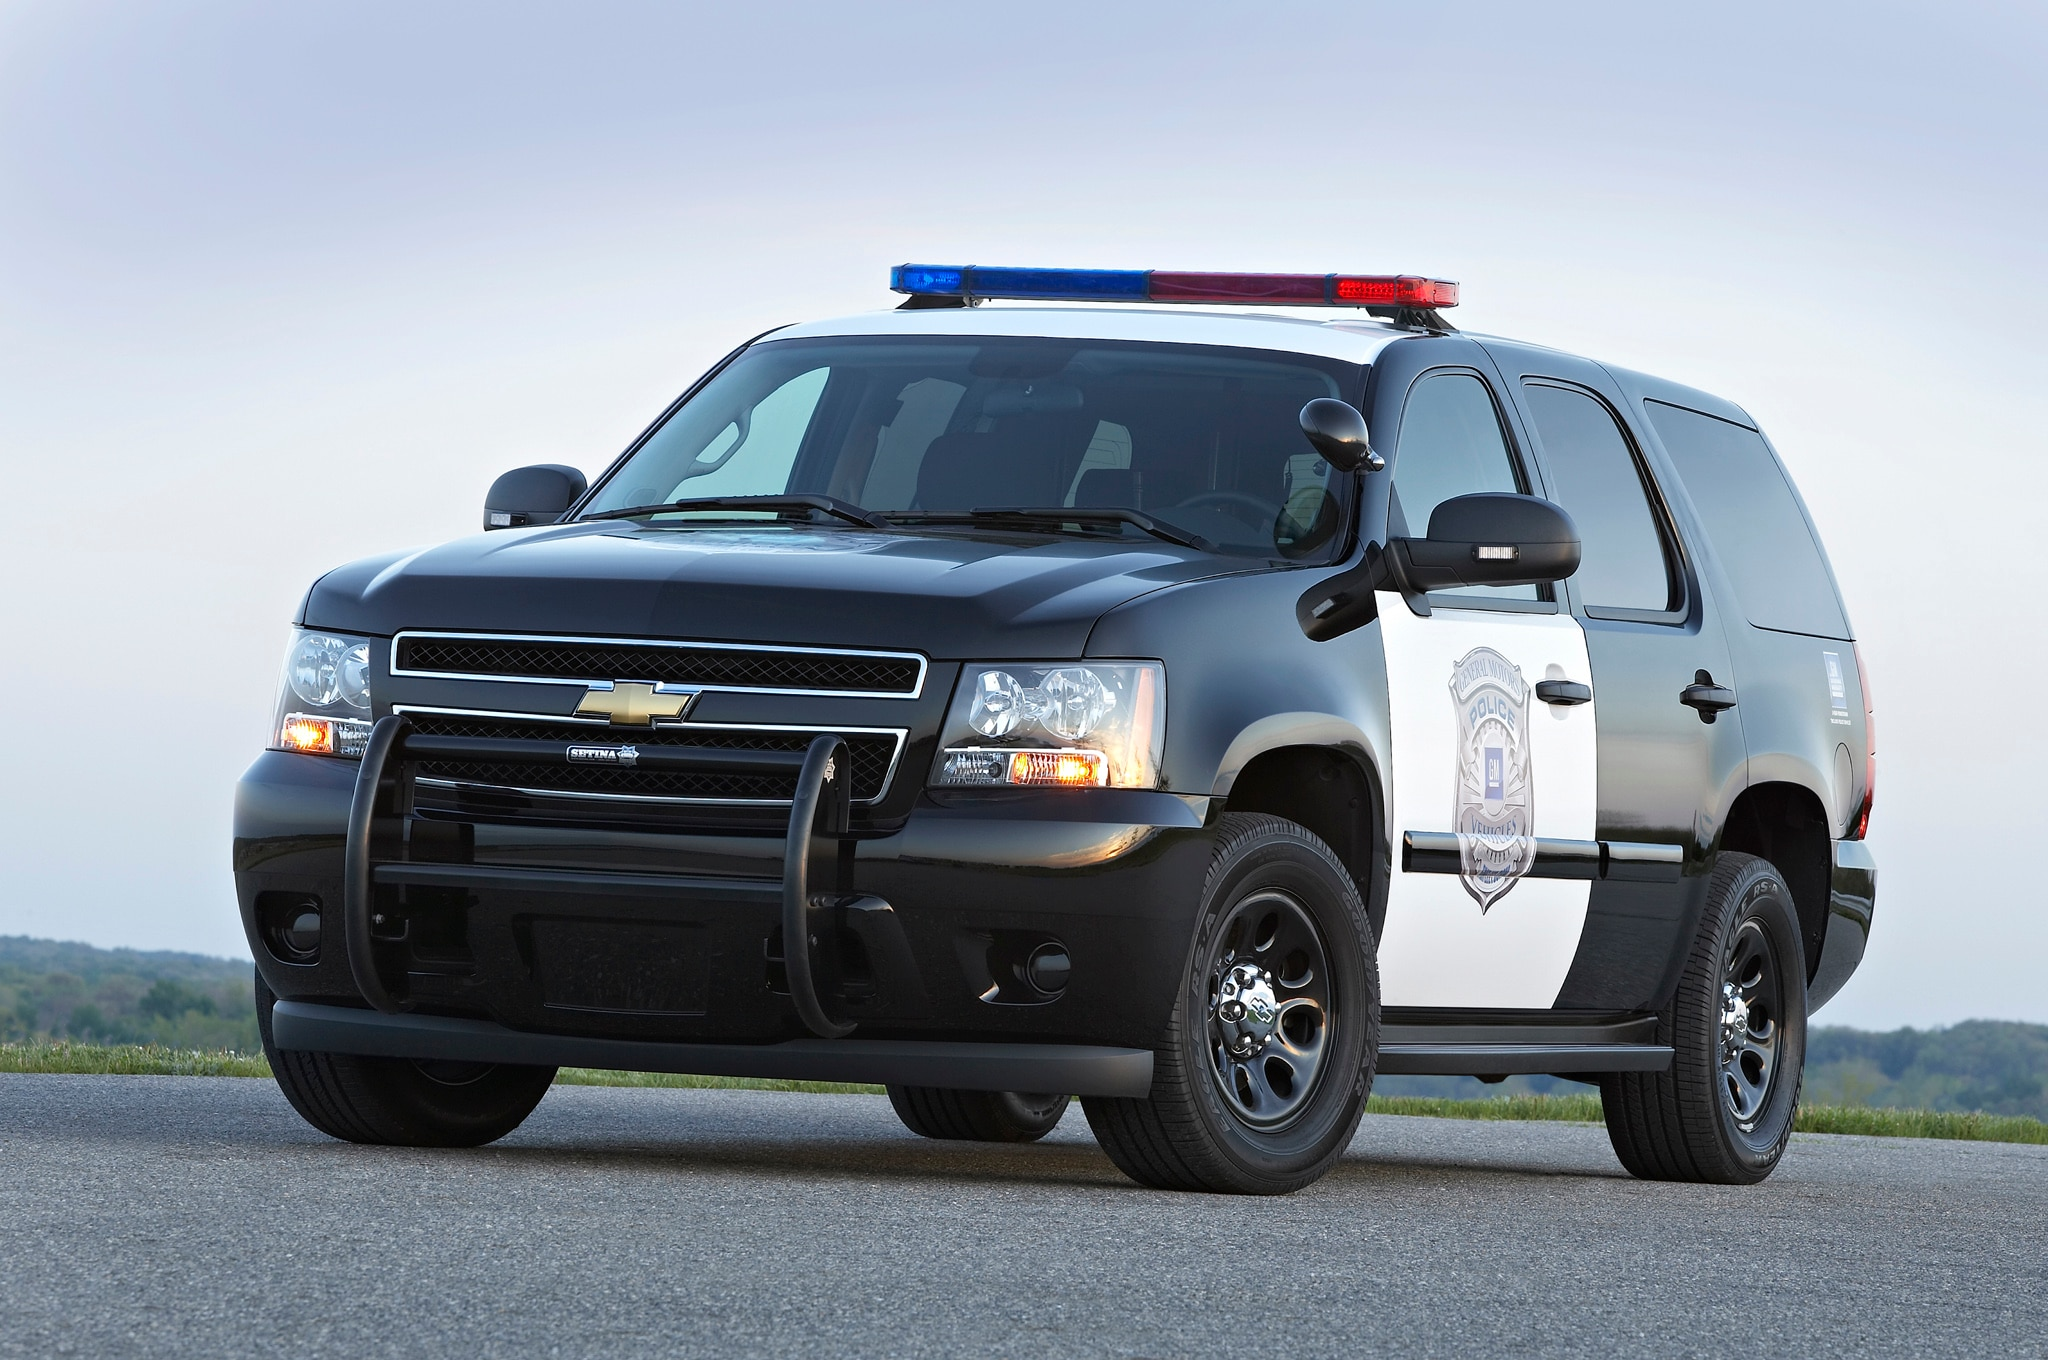 2013 Chevrolet Tahoe PPV Front Three Quarters 2 caught next gen 2014 chevy tahoe spied testing in michigan 2016 tahoe police package wiring diagrams at n-0.co